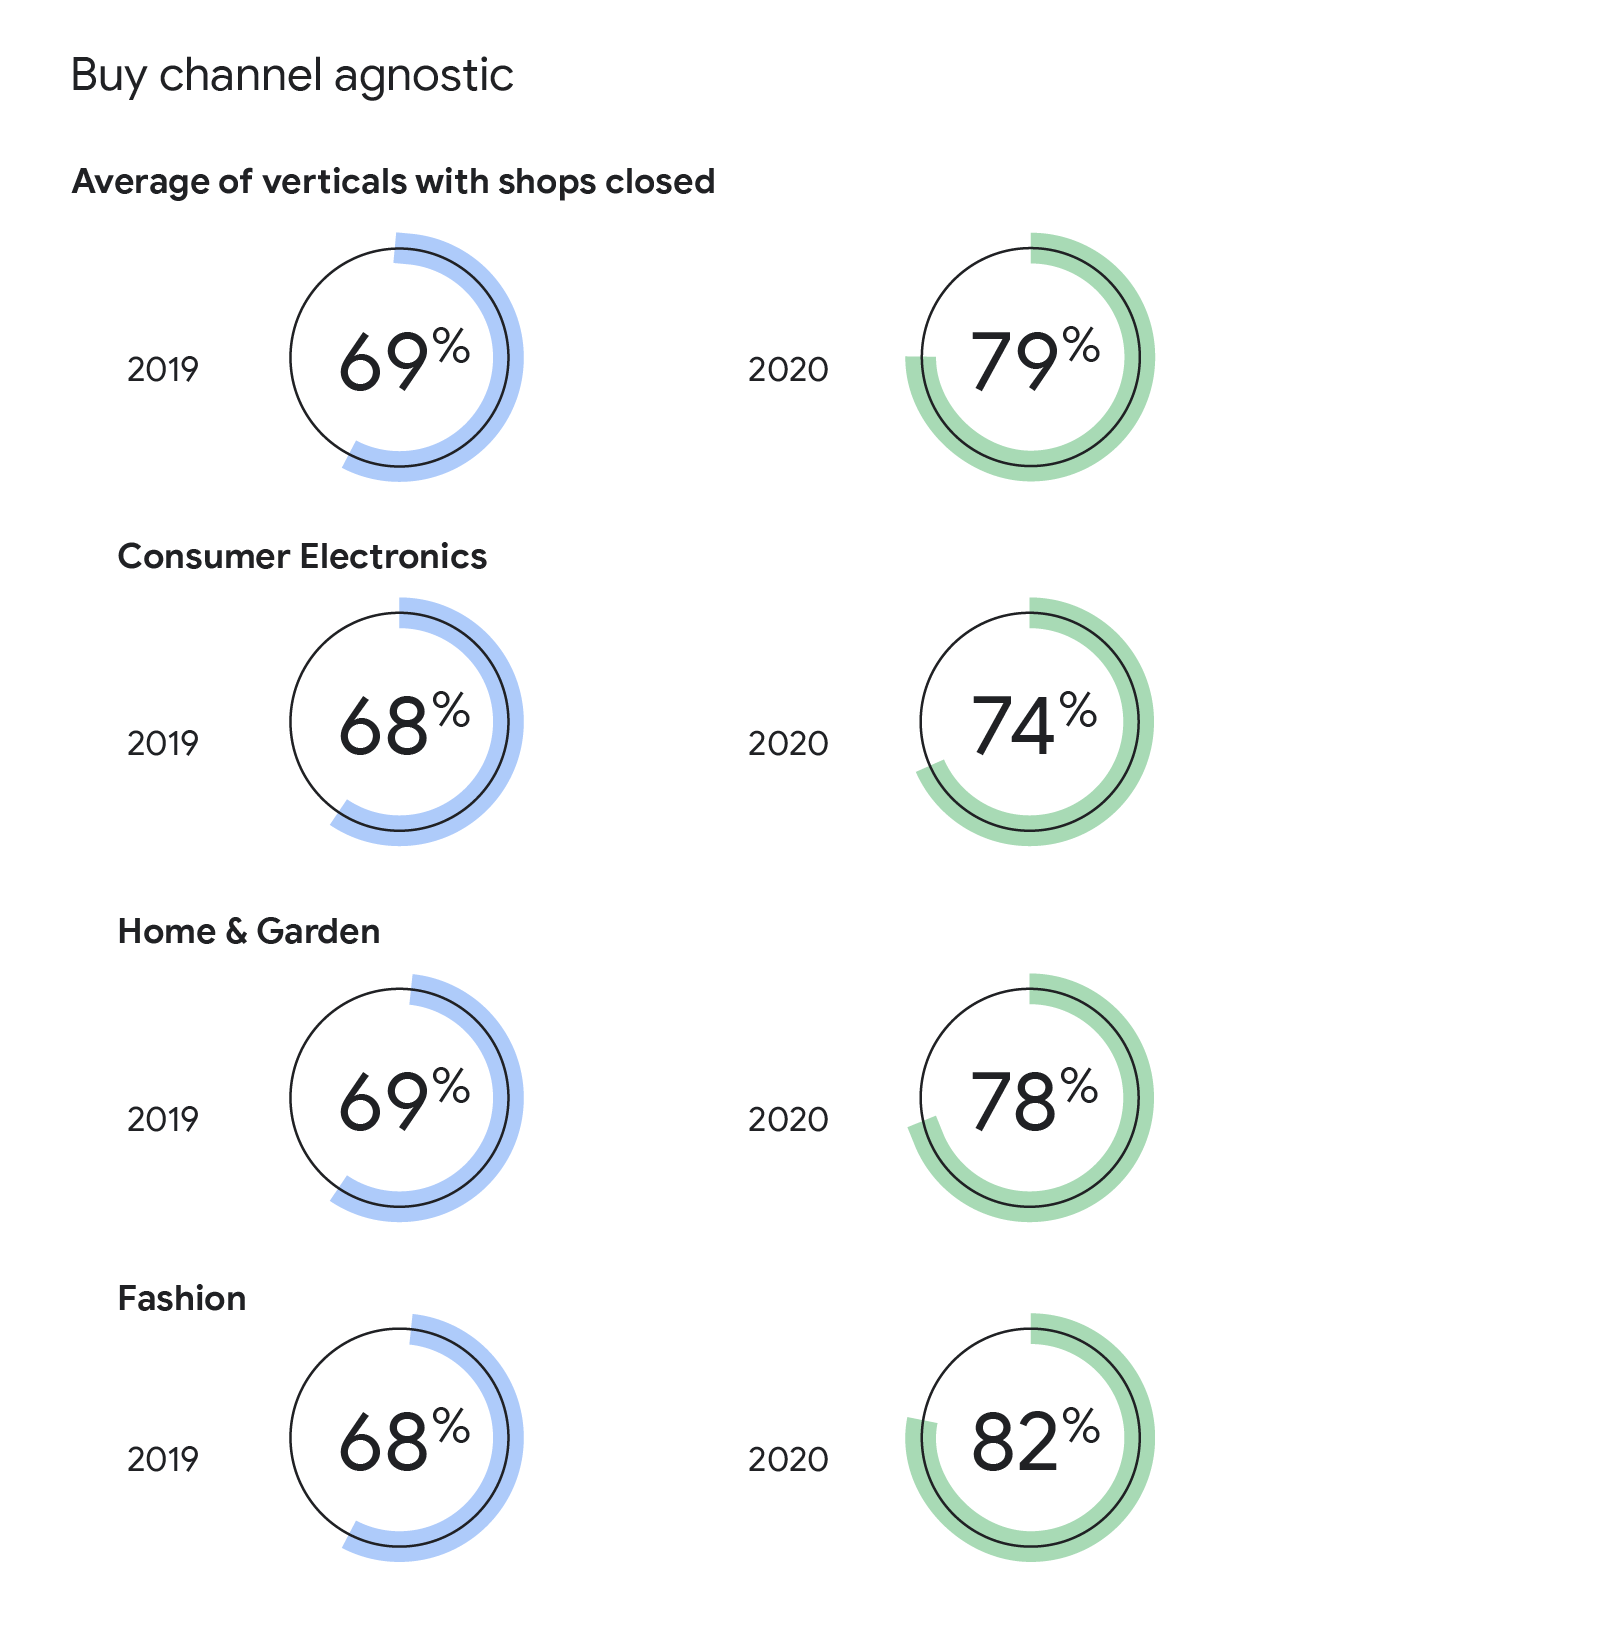 This graph shows the growth/decline in preference for 'always buying offline', 'buying channel agnostic', or 'always or mostly buying offline' from 2019 to 2020.